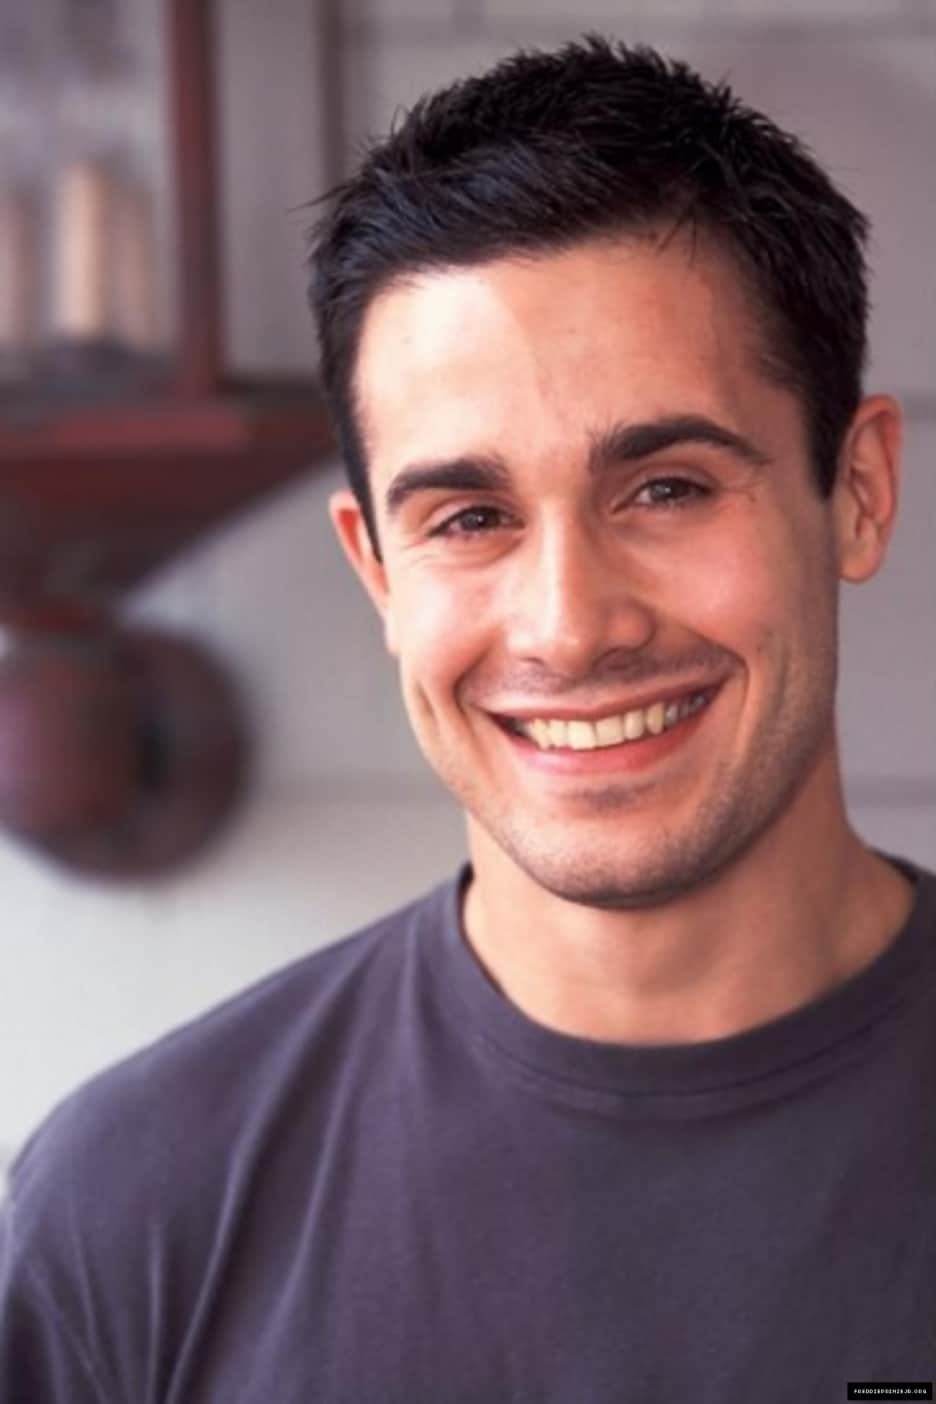 Freddie Prinze Jr. American Actor, Voice Actor, Producer, Writer